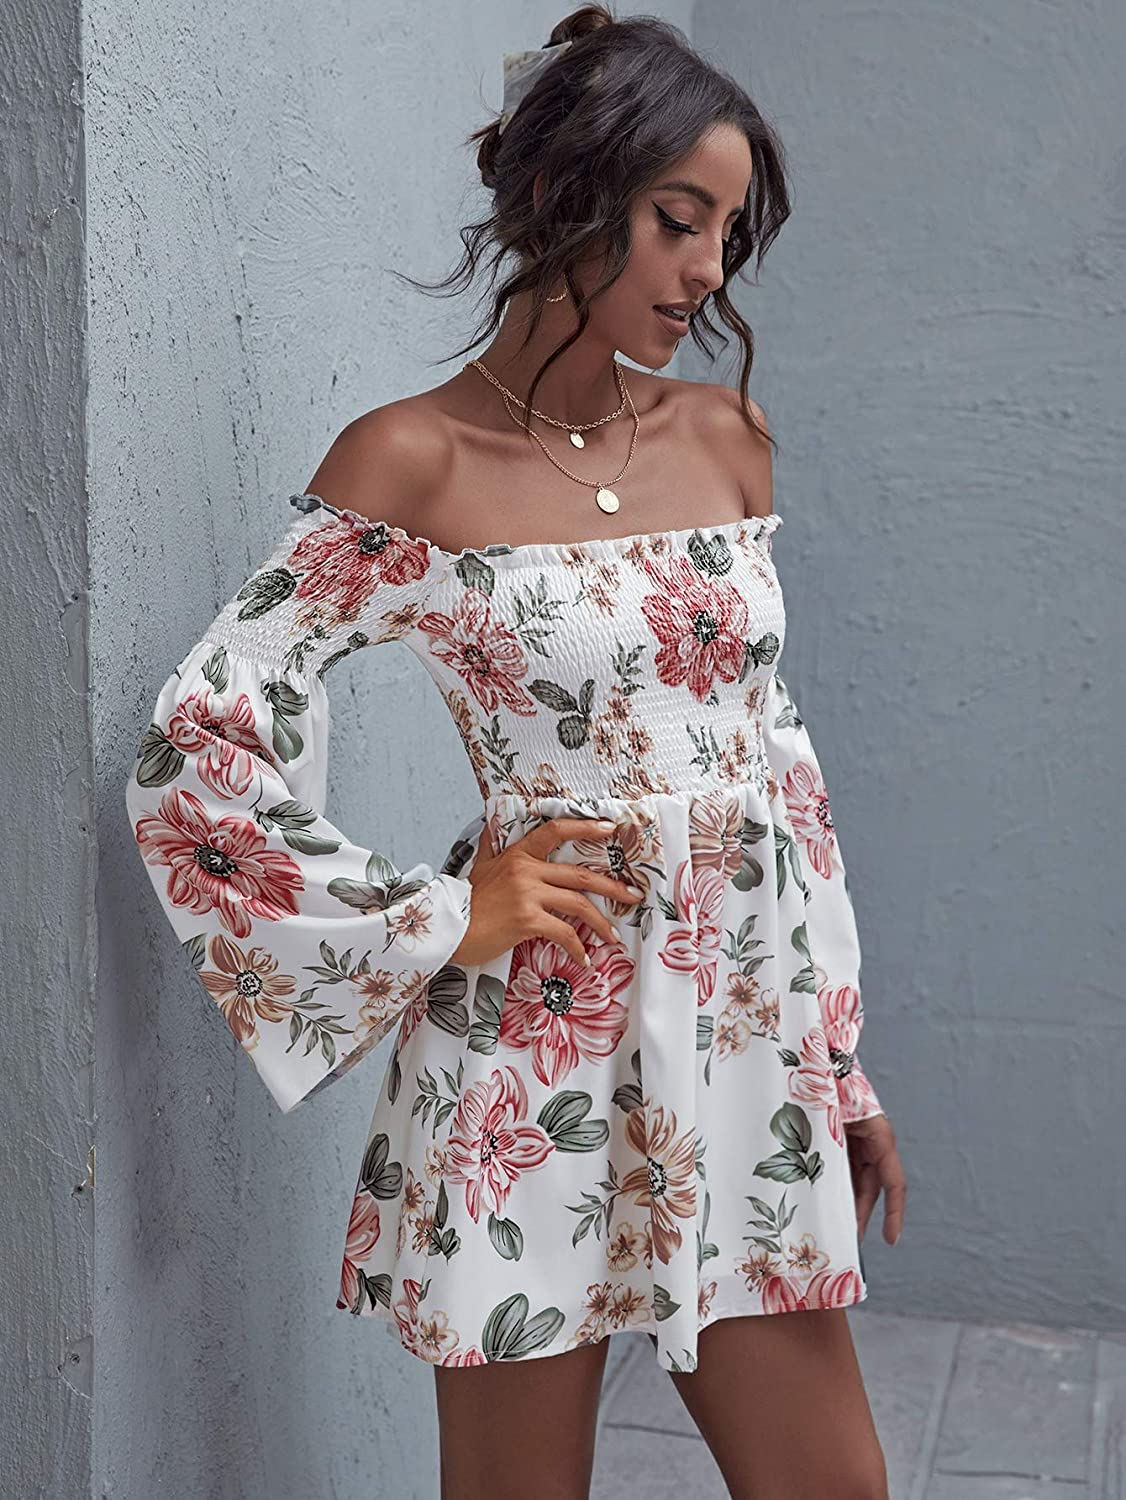 Romwe Womens Casual Floral Print Off Shoulder Trumpet Sleeve Swing Dress